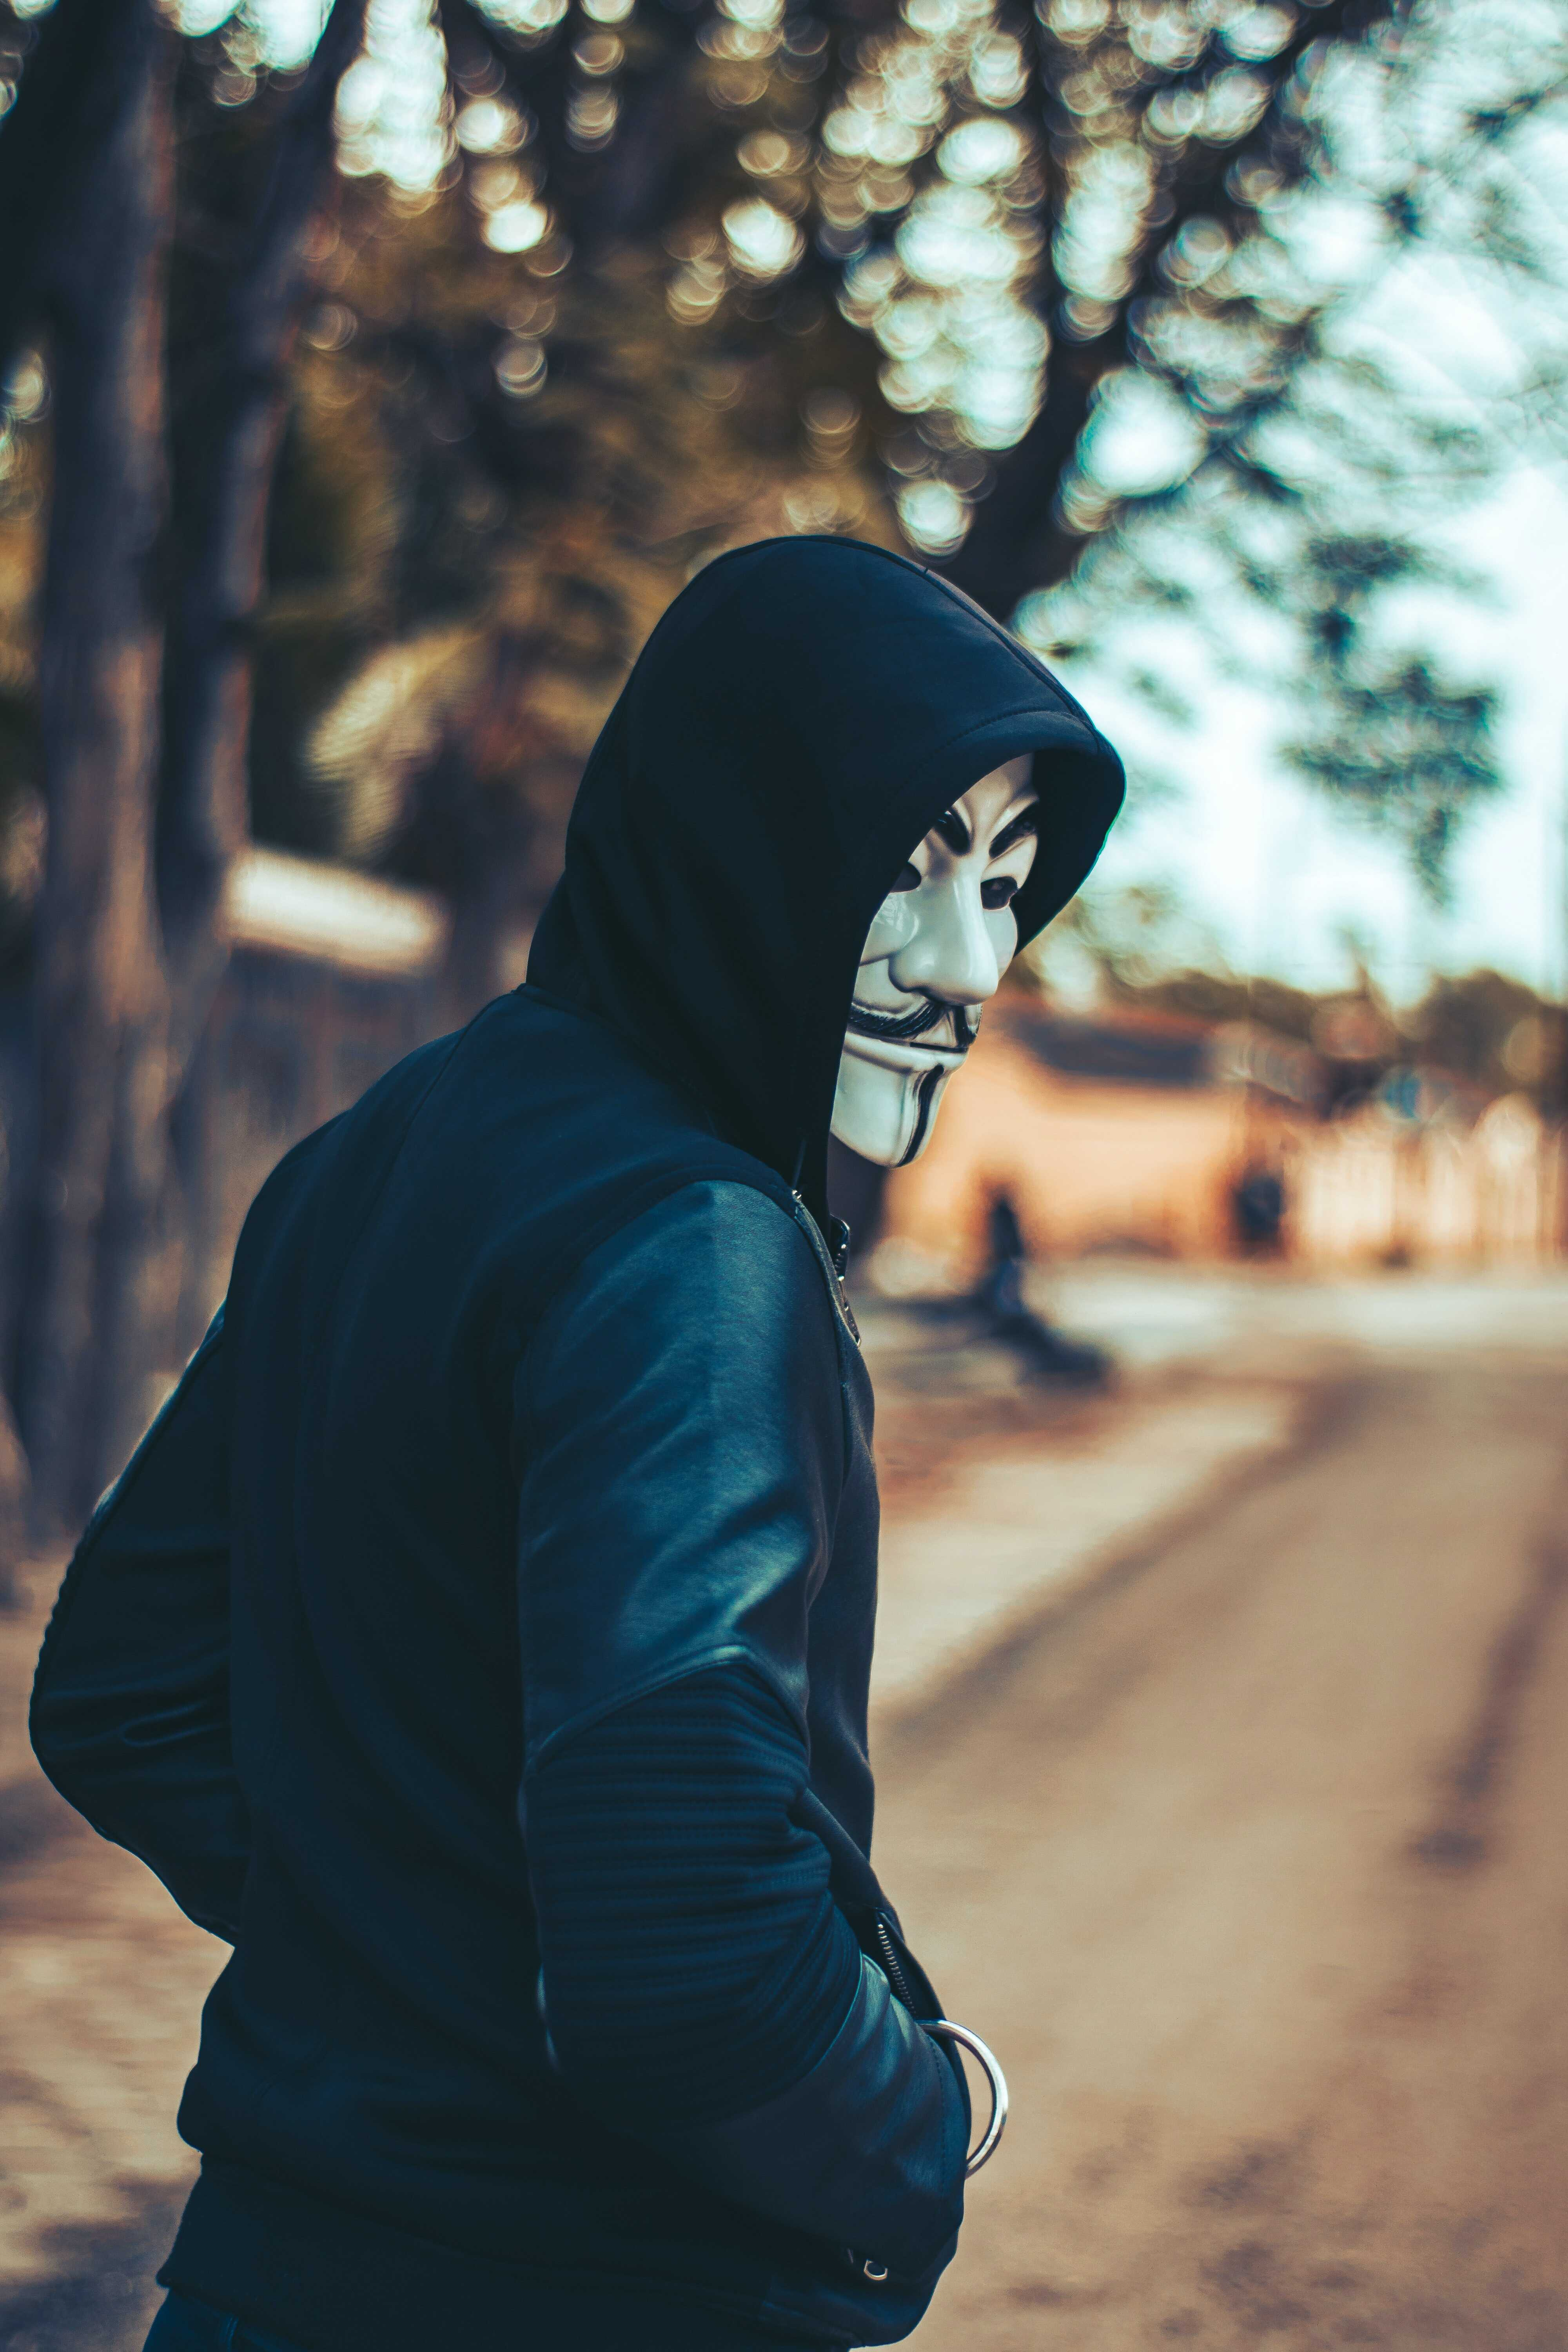 a man with a vendetta mask